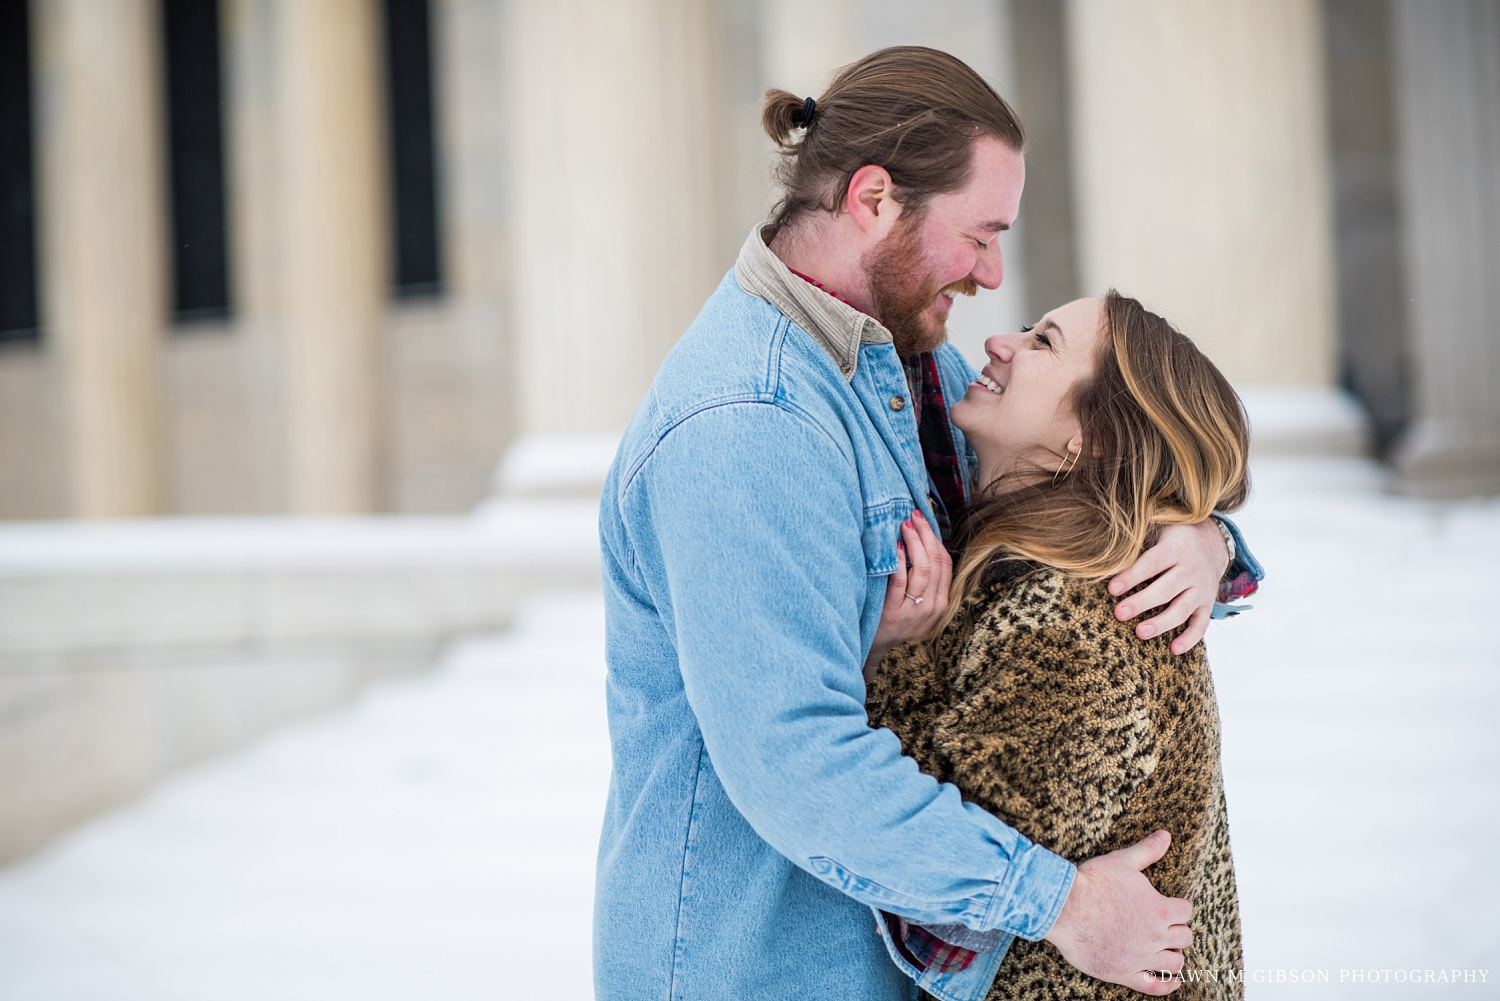 A warm leopard print coat paired with Zoe's dad's jean jacket on her man, Jon, added perfect personal touches all around to this wonderful winter engagement session.